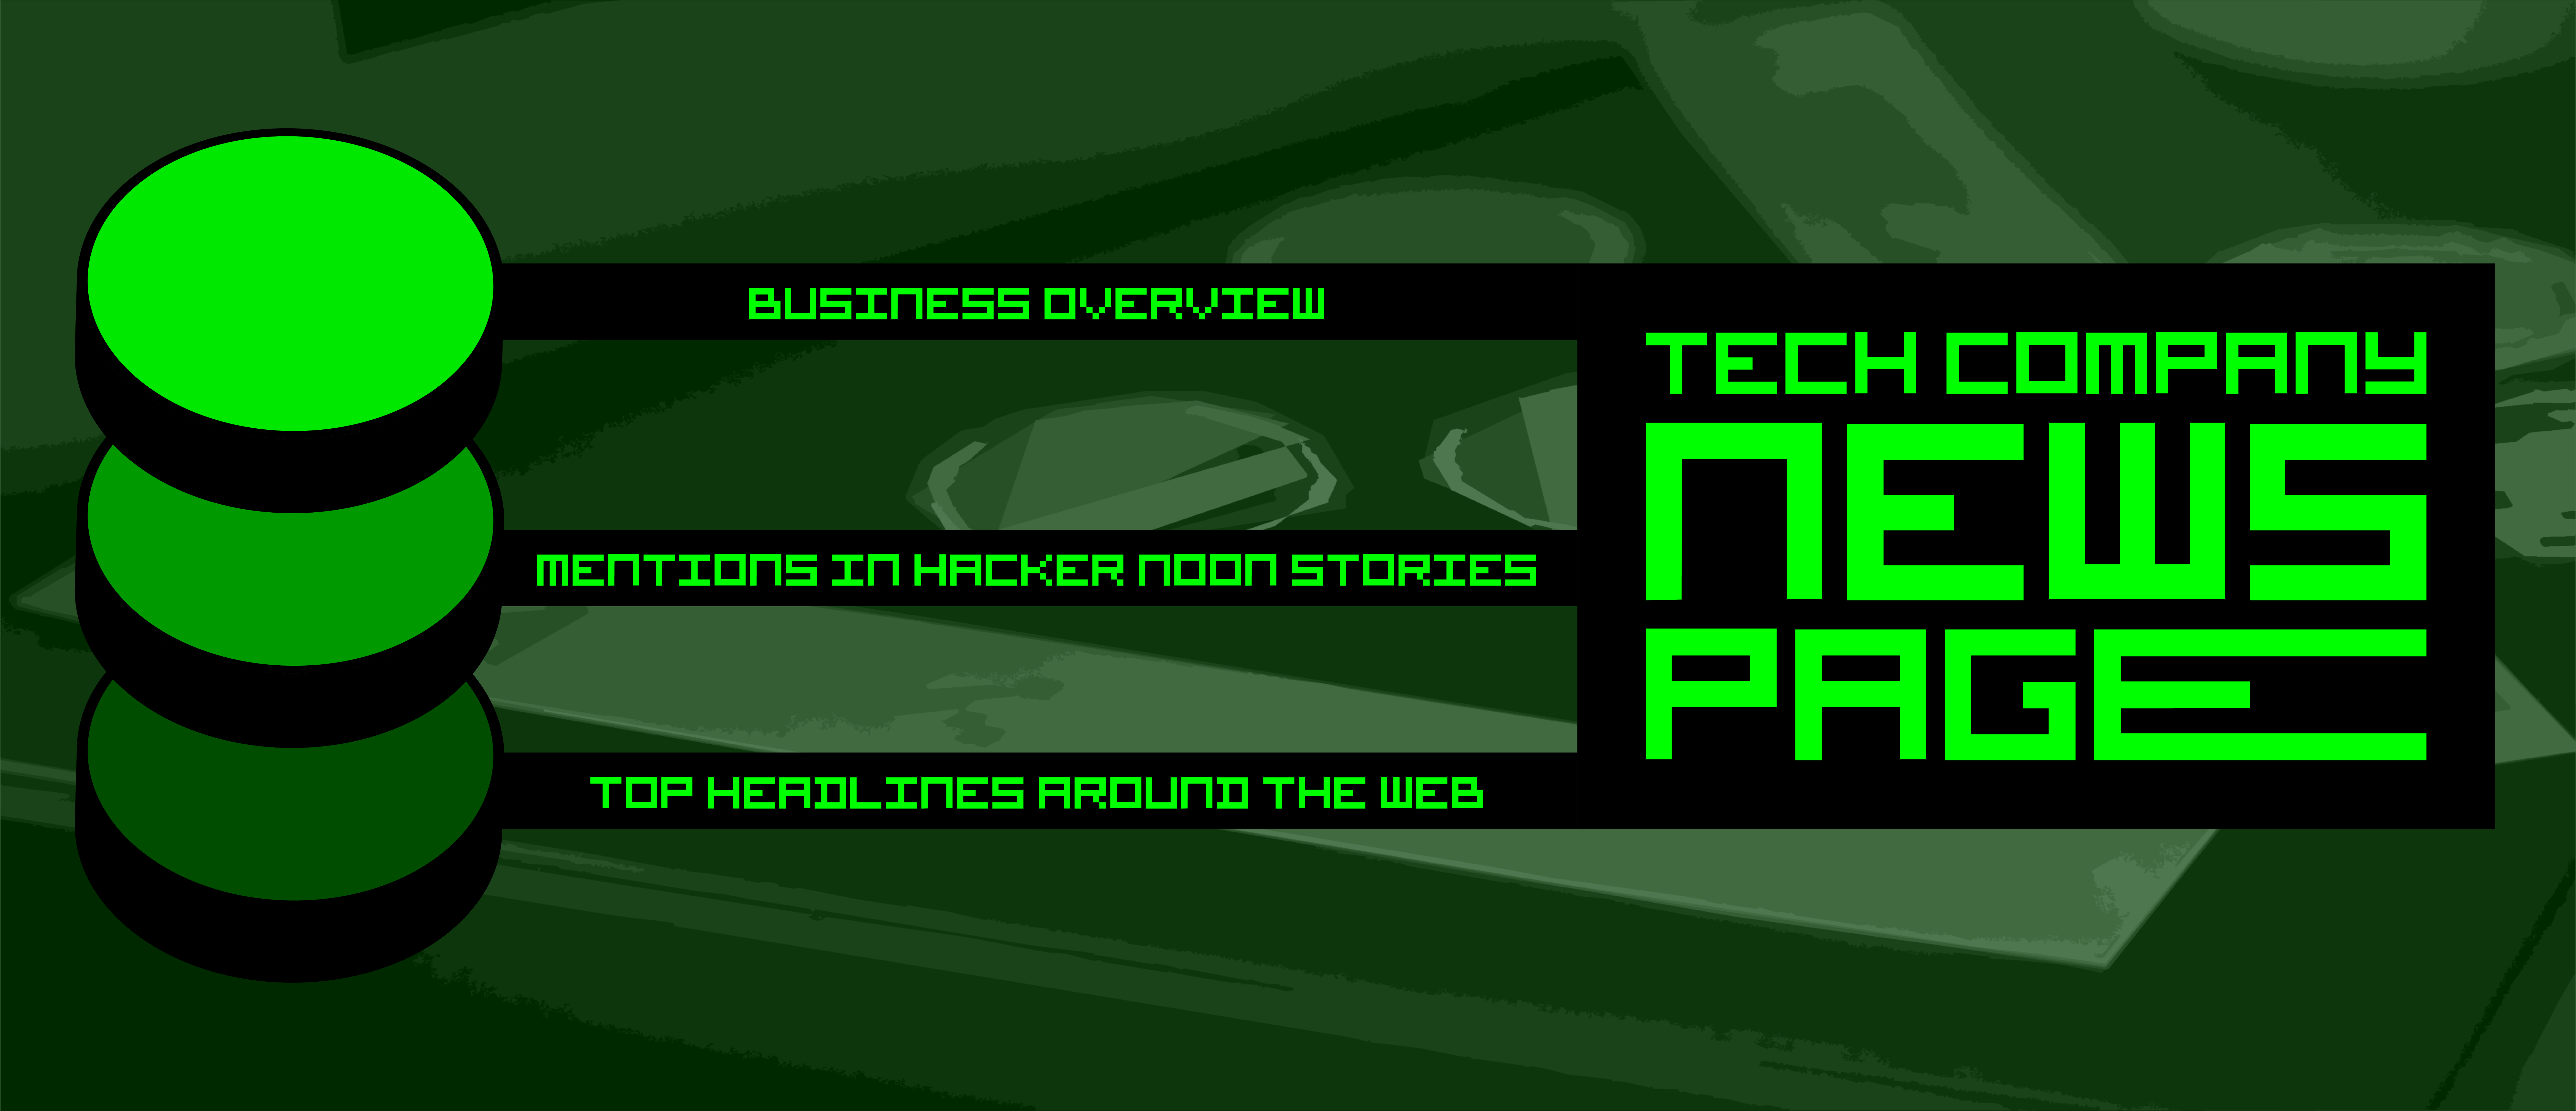 /22-tech-company-news-pages-o6y343j feature image